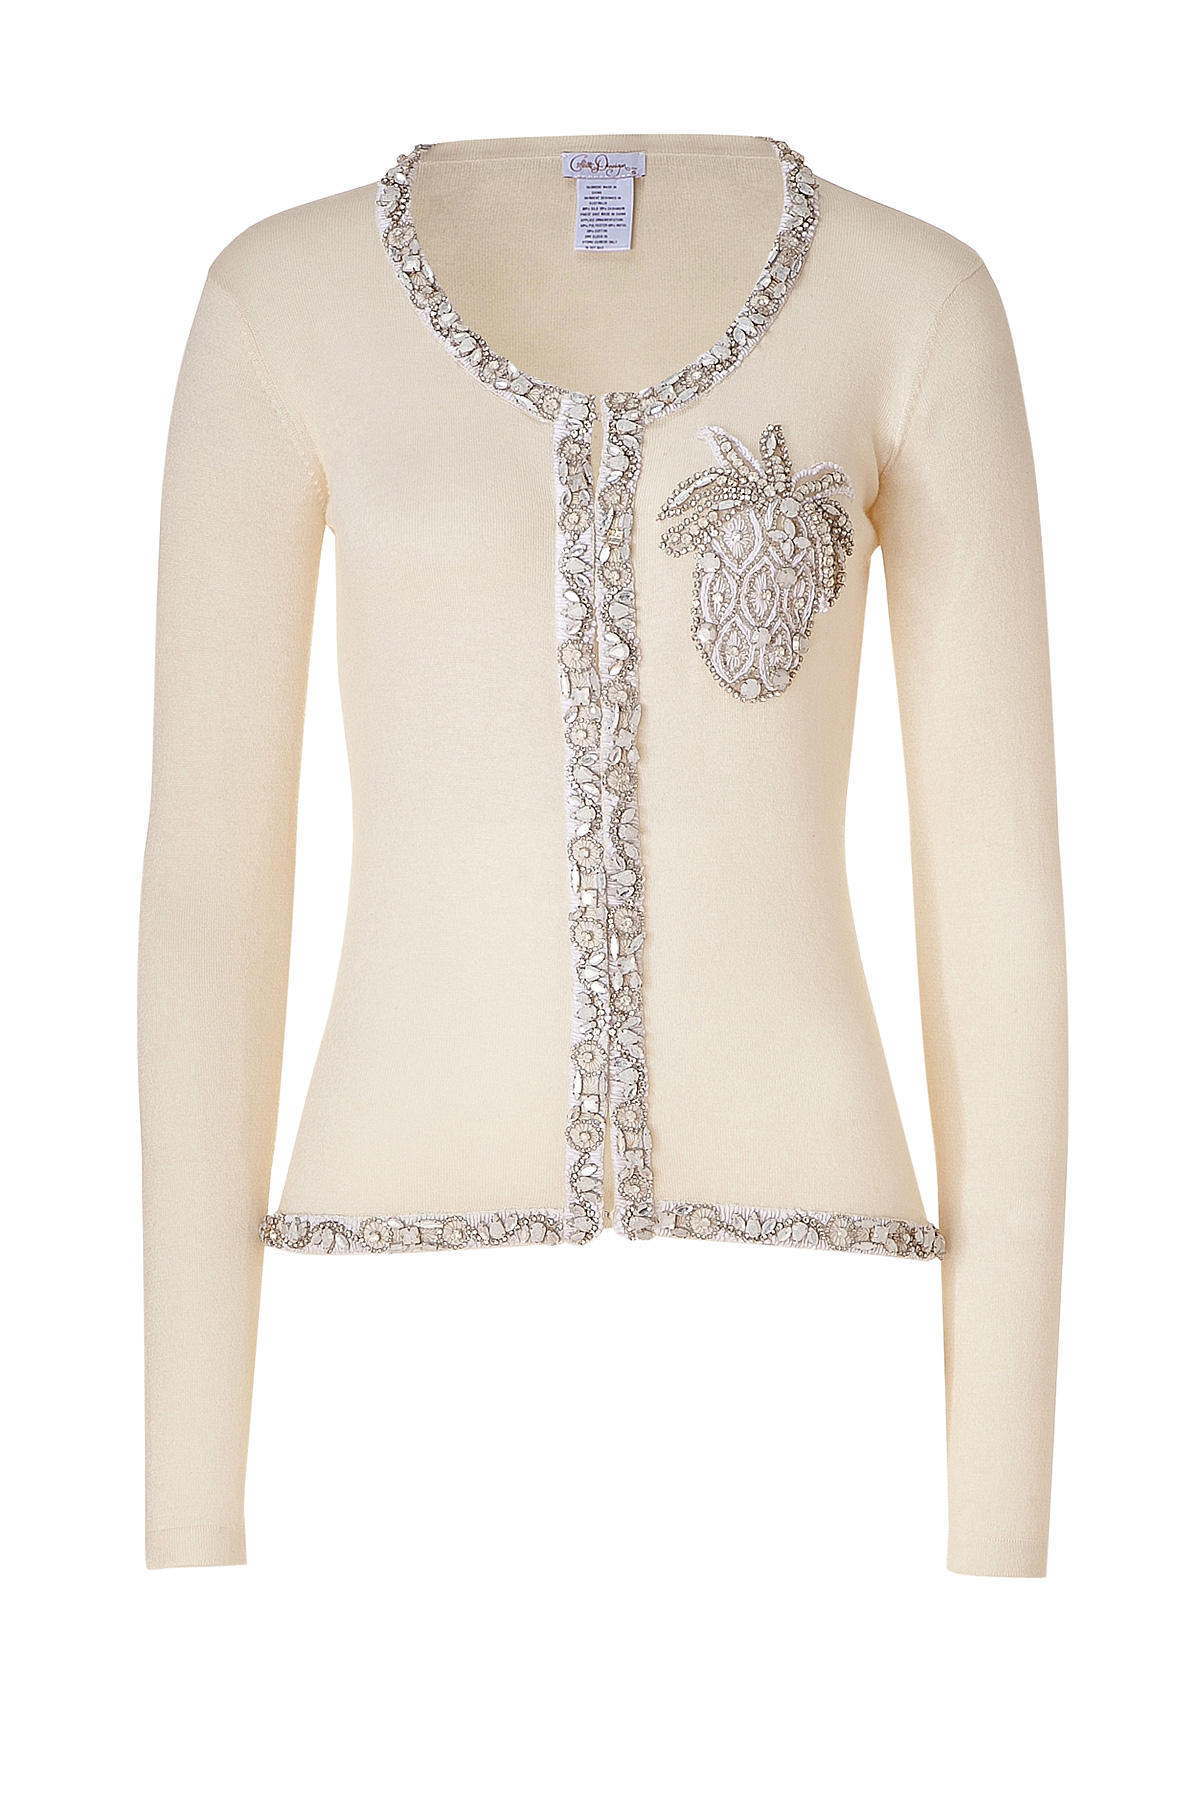 Collette dinnigan Ivory Pineapple Beaded Cardigan in White | Lyst